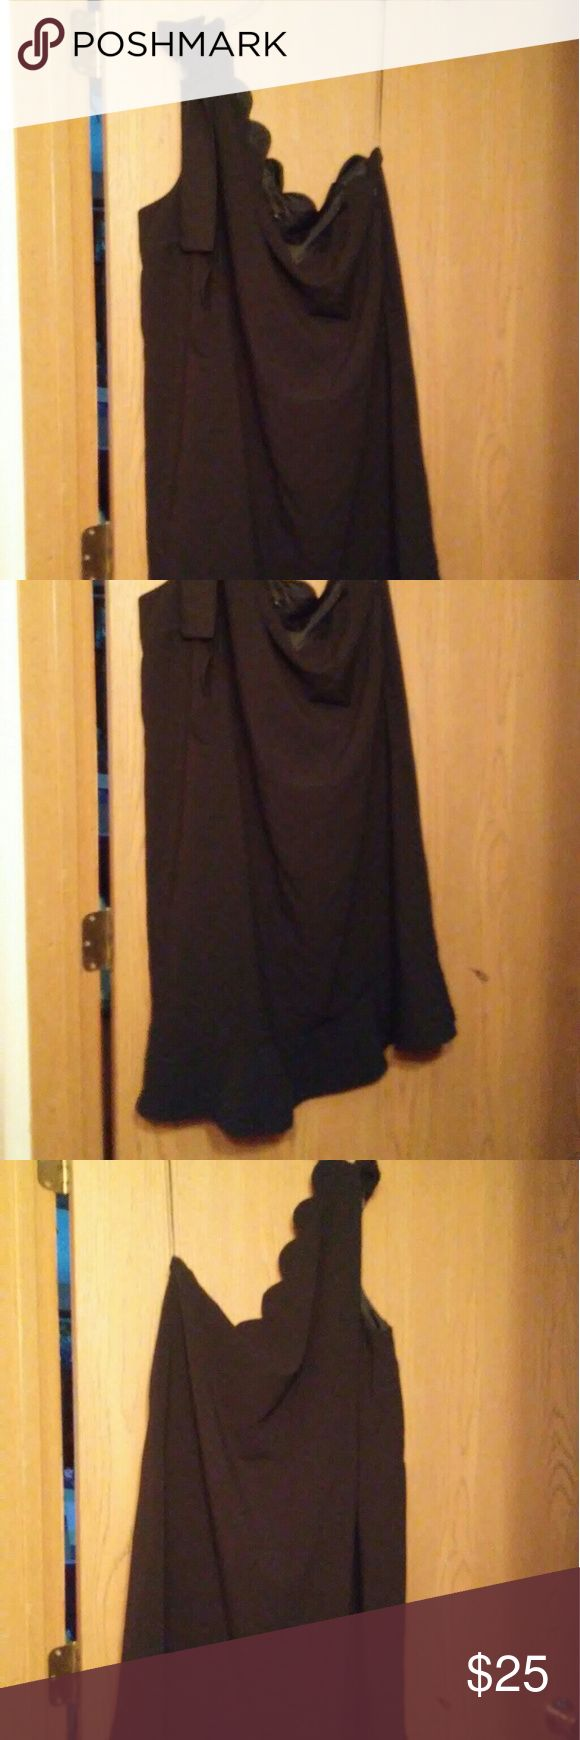 Victoria Beckham dress Black ruffled edge one strap dress in excellent condition.  No fade. Victoria Beckham for Target Dresses